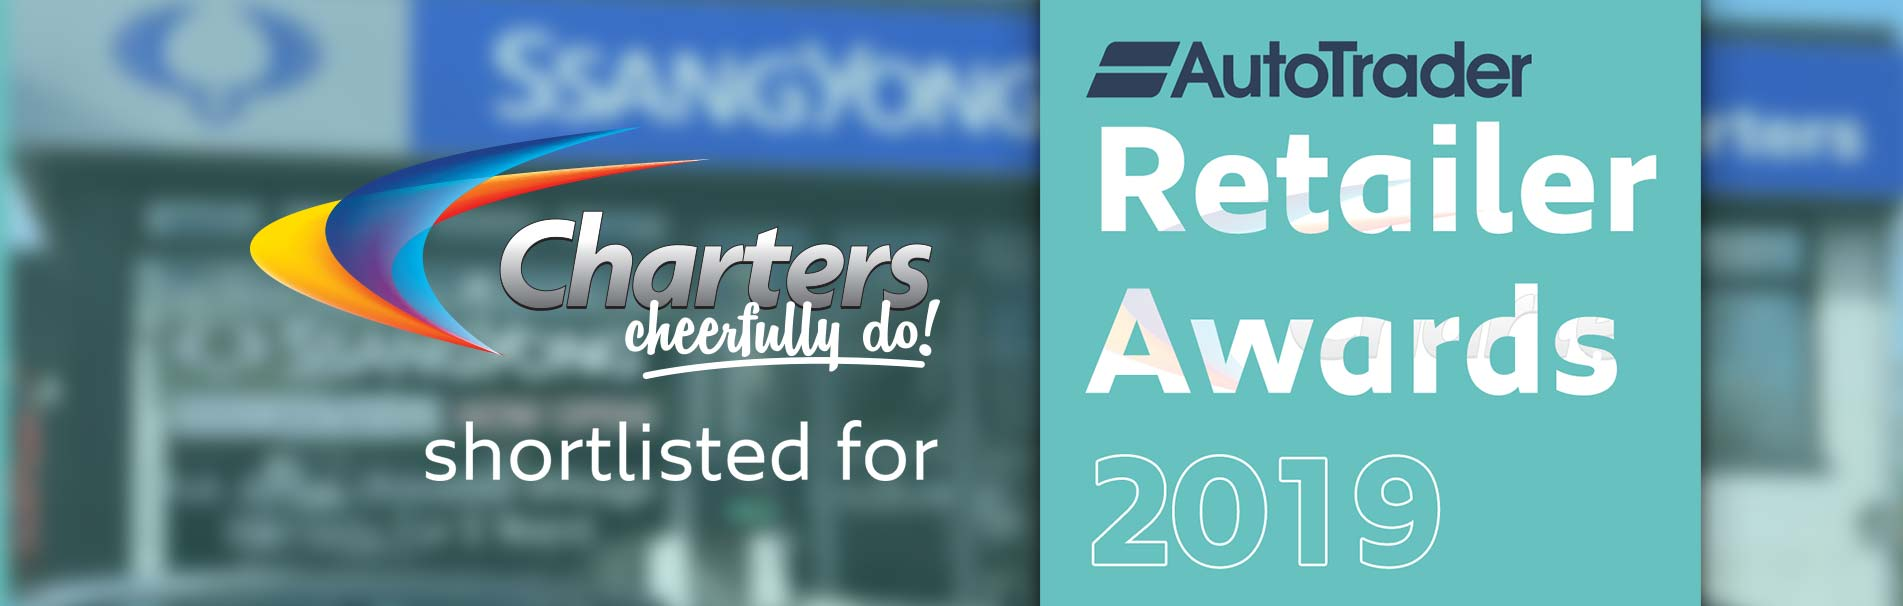 ssangyong-reading-car-dealership-shortlisted-for-autotrader-retailer-of-the-year-awards-2019-sli